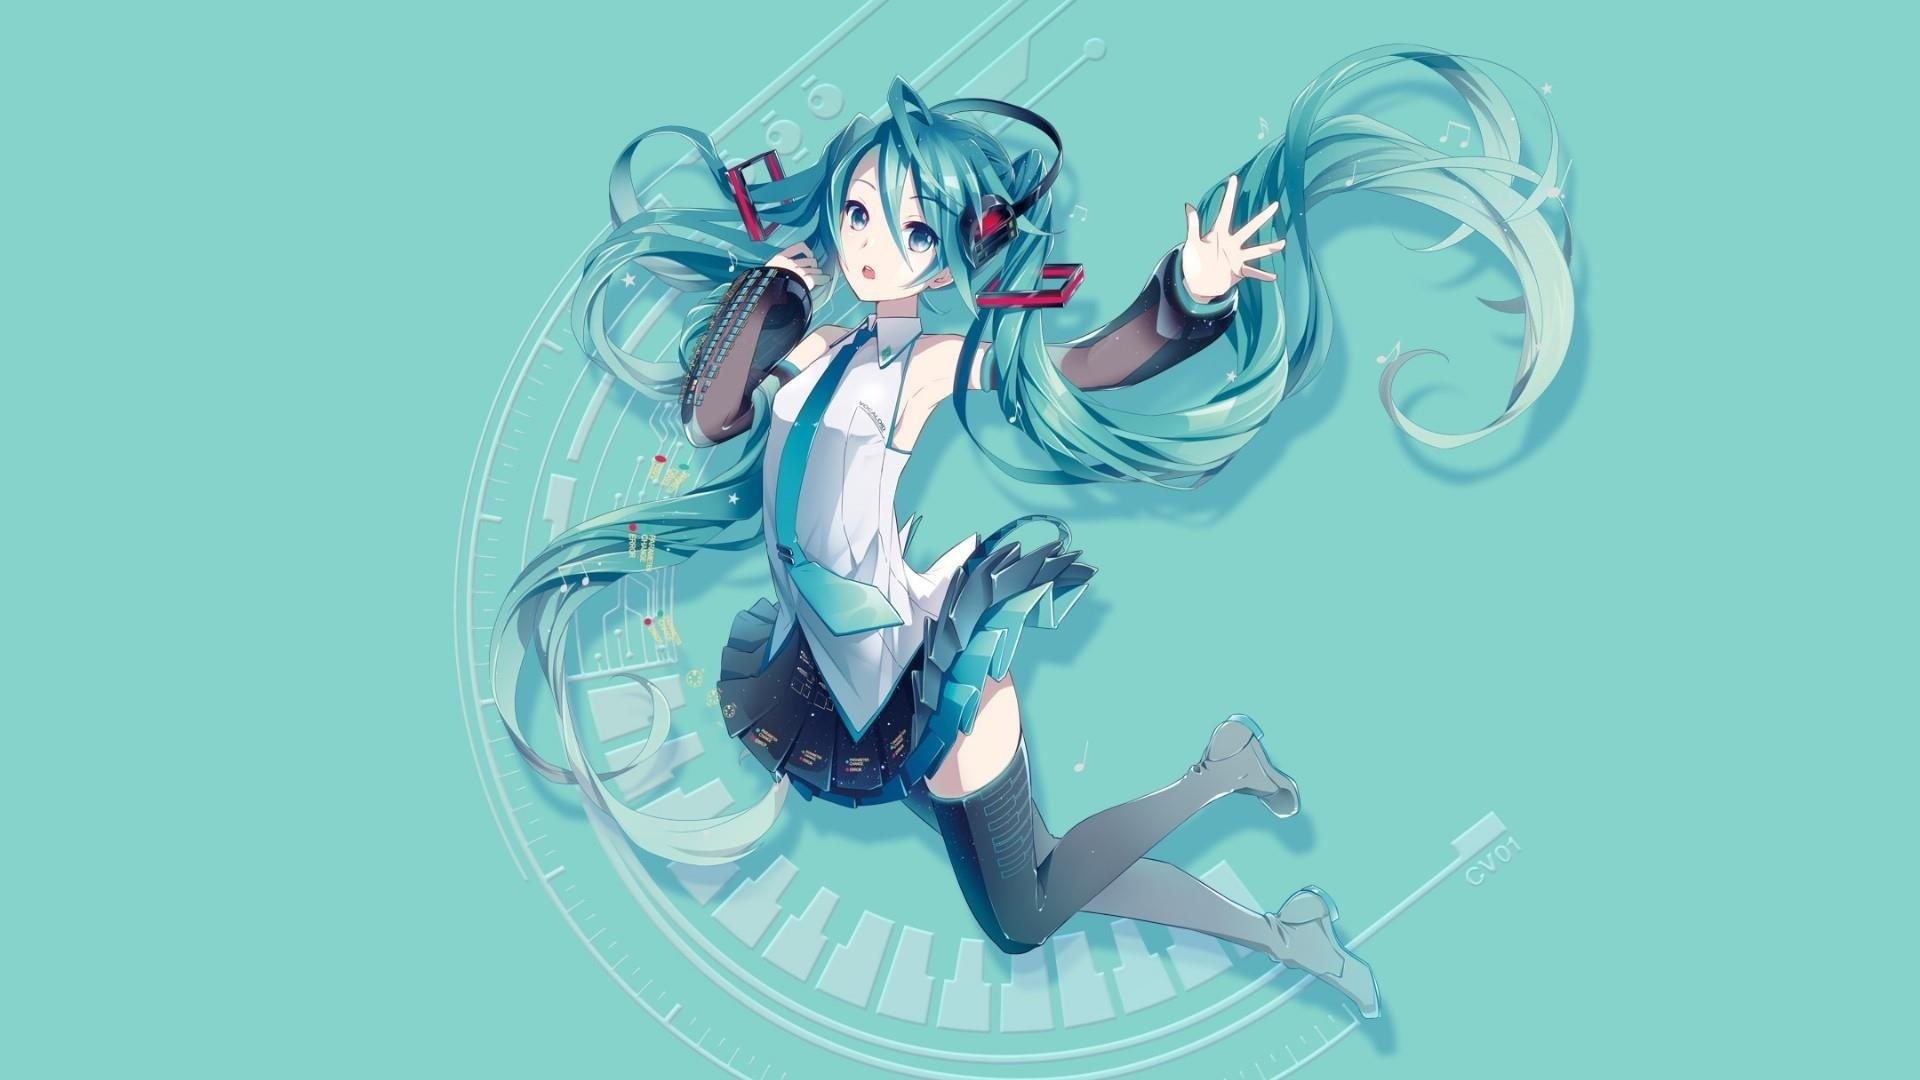 Hatsune Miku HD Download